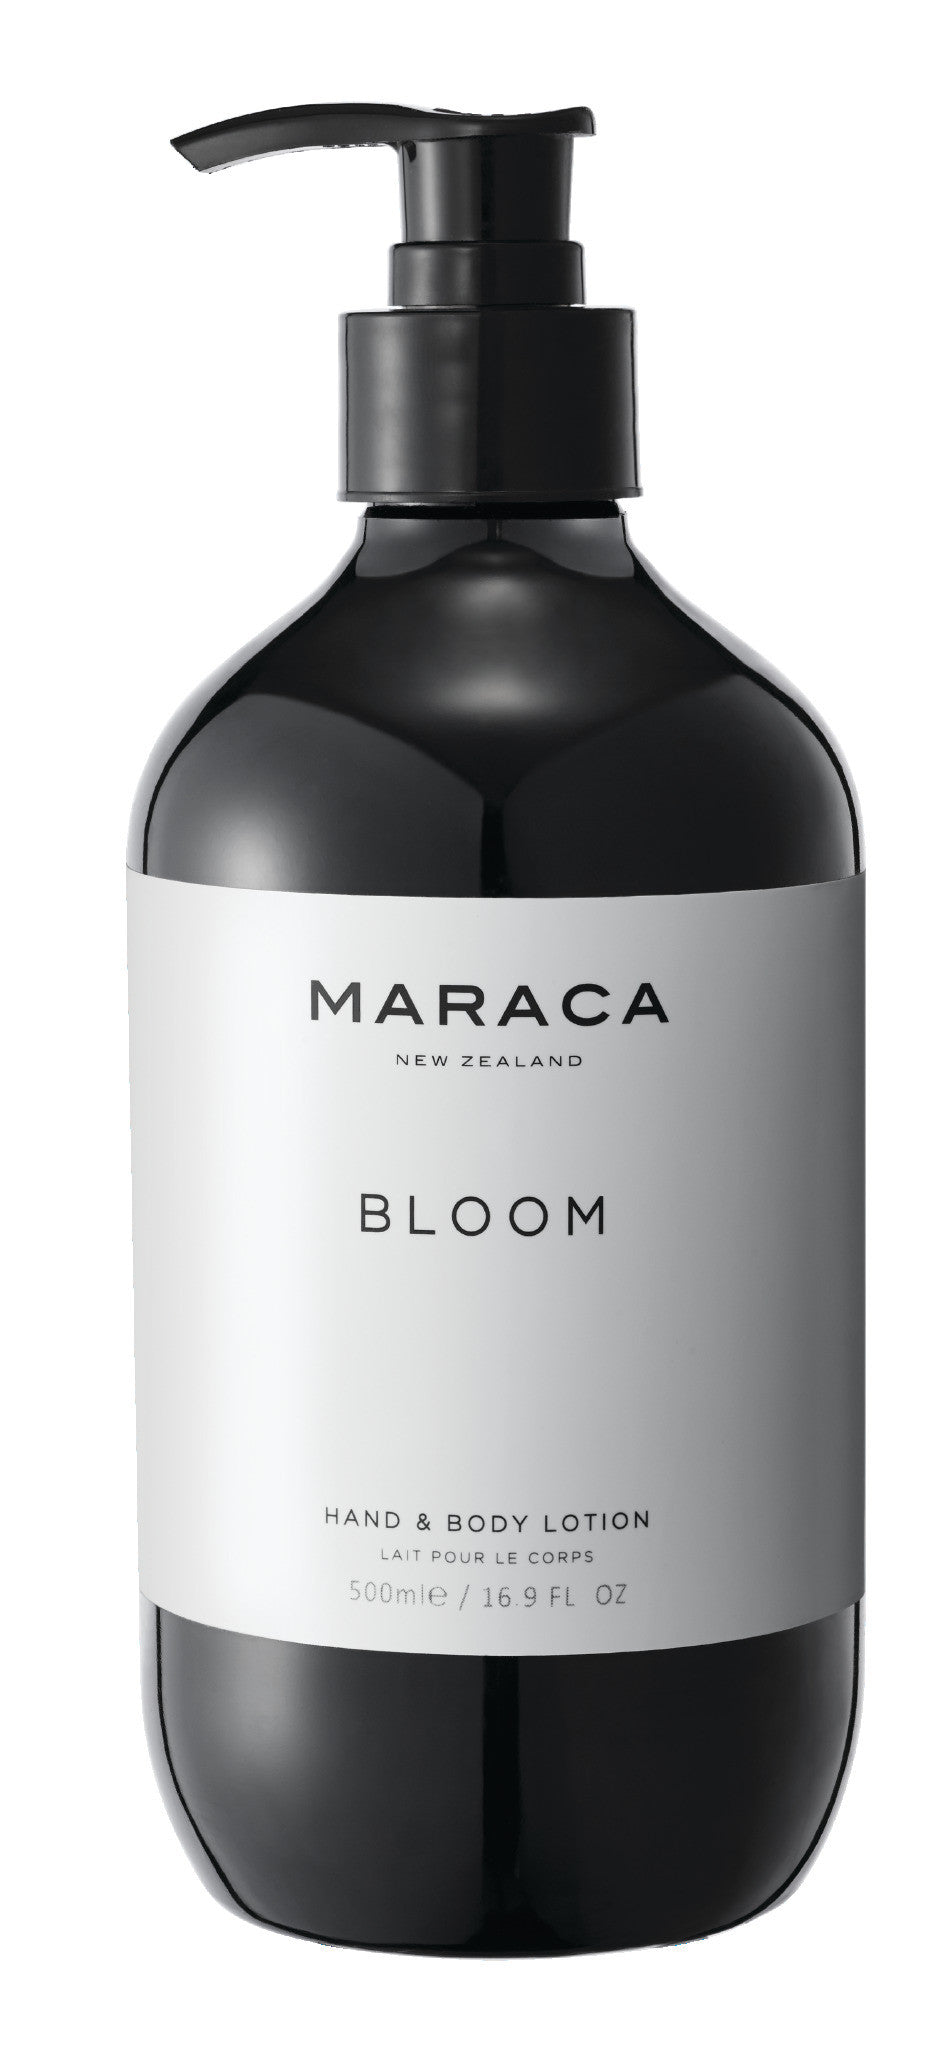 Maraca Bloom Hand & Body Lotion